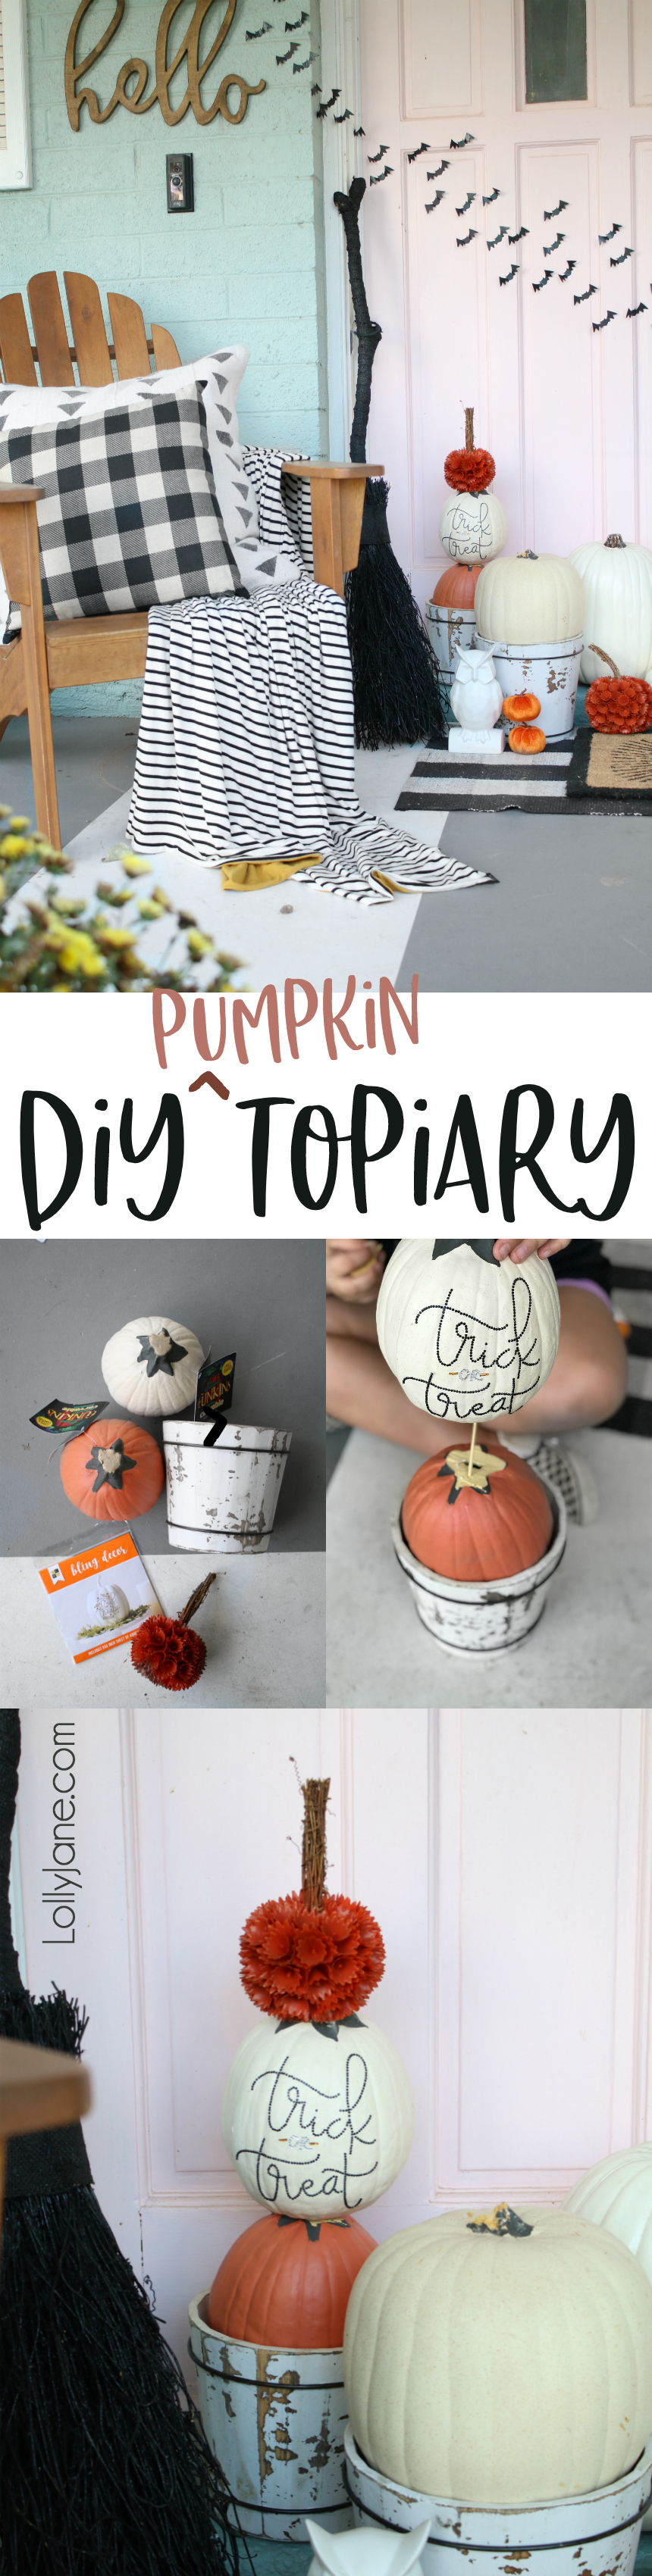 Diy Pumpkin Topiary Lolly Jane